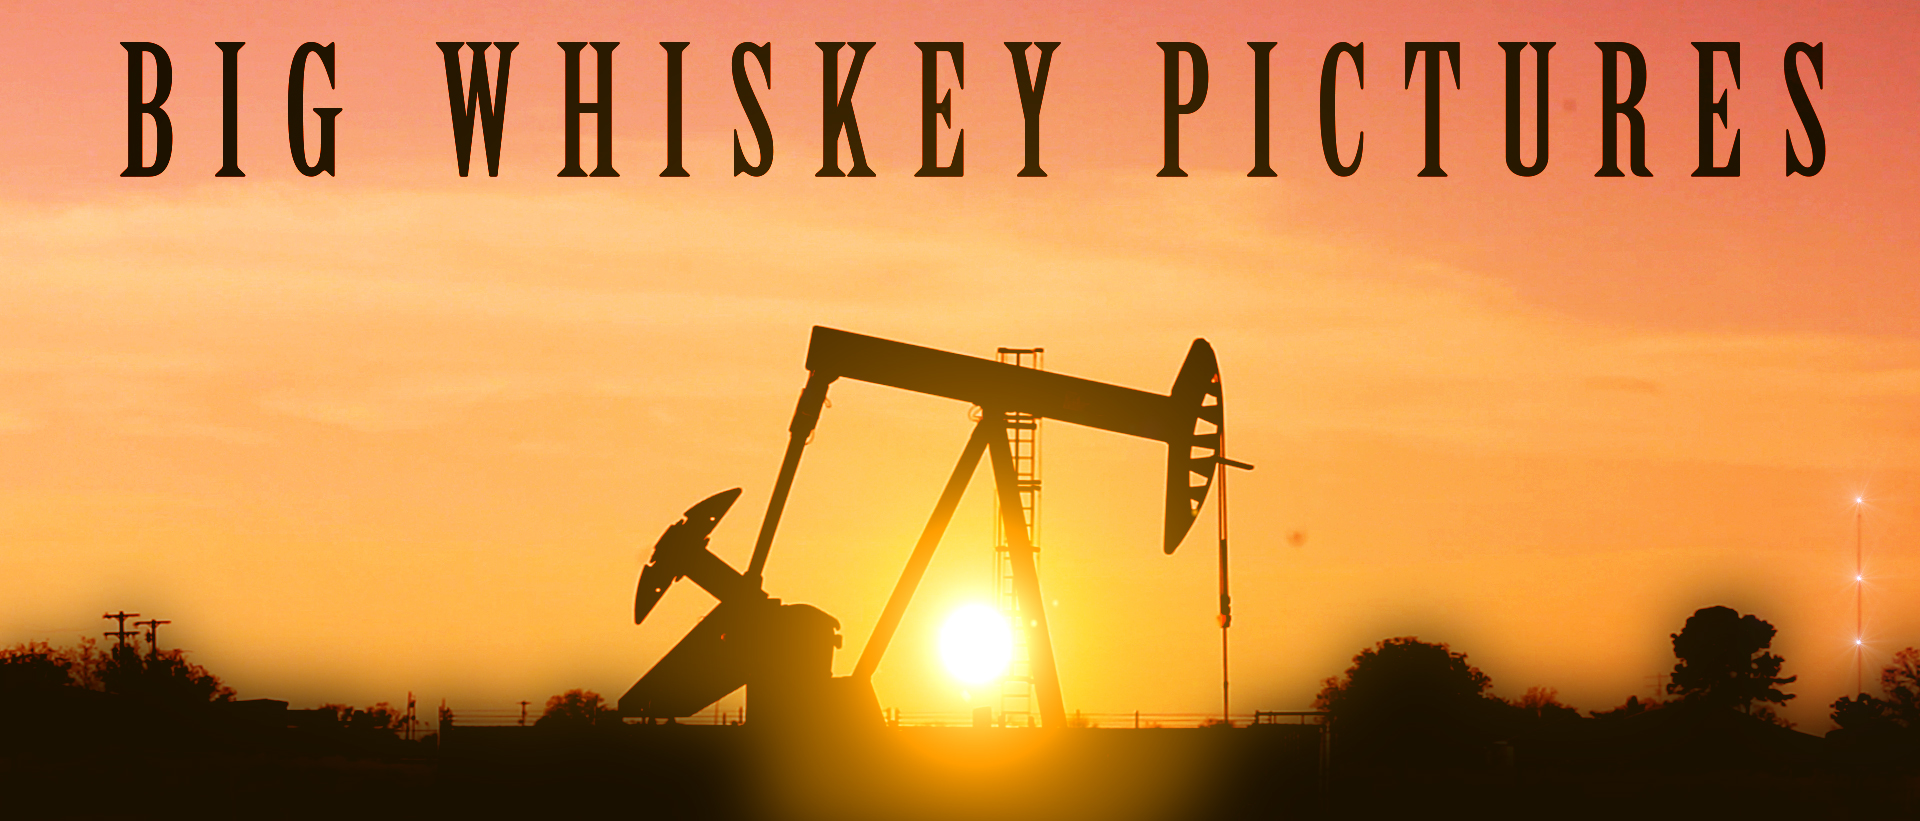 Big Whiskey Pictures